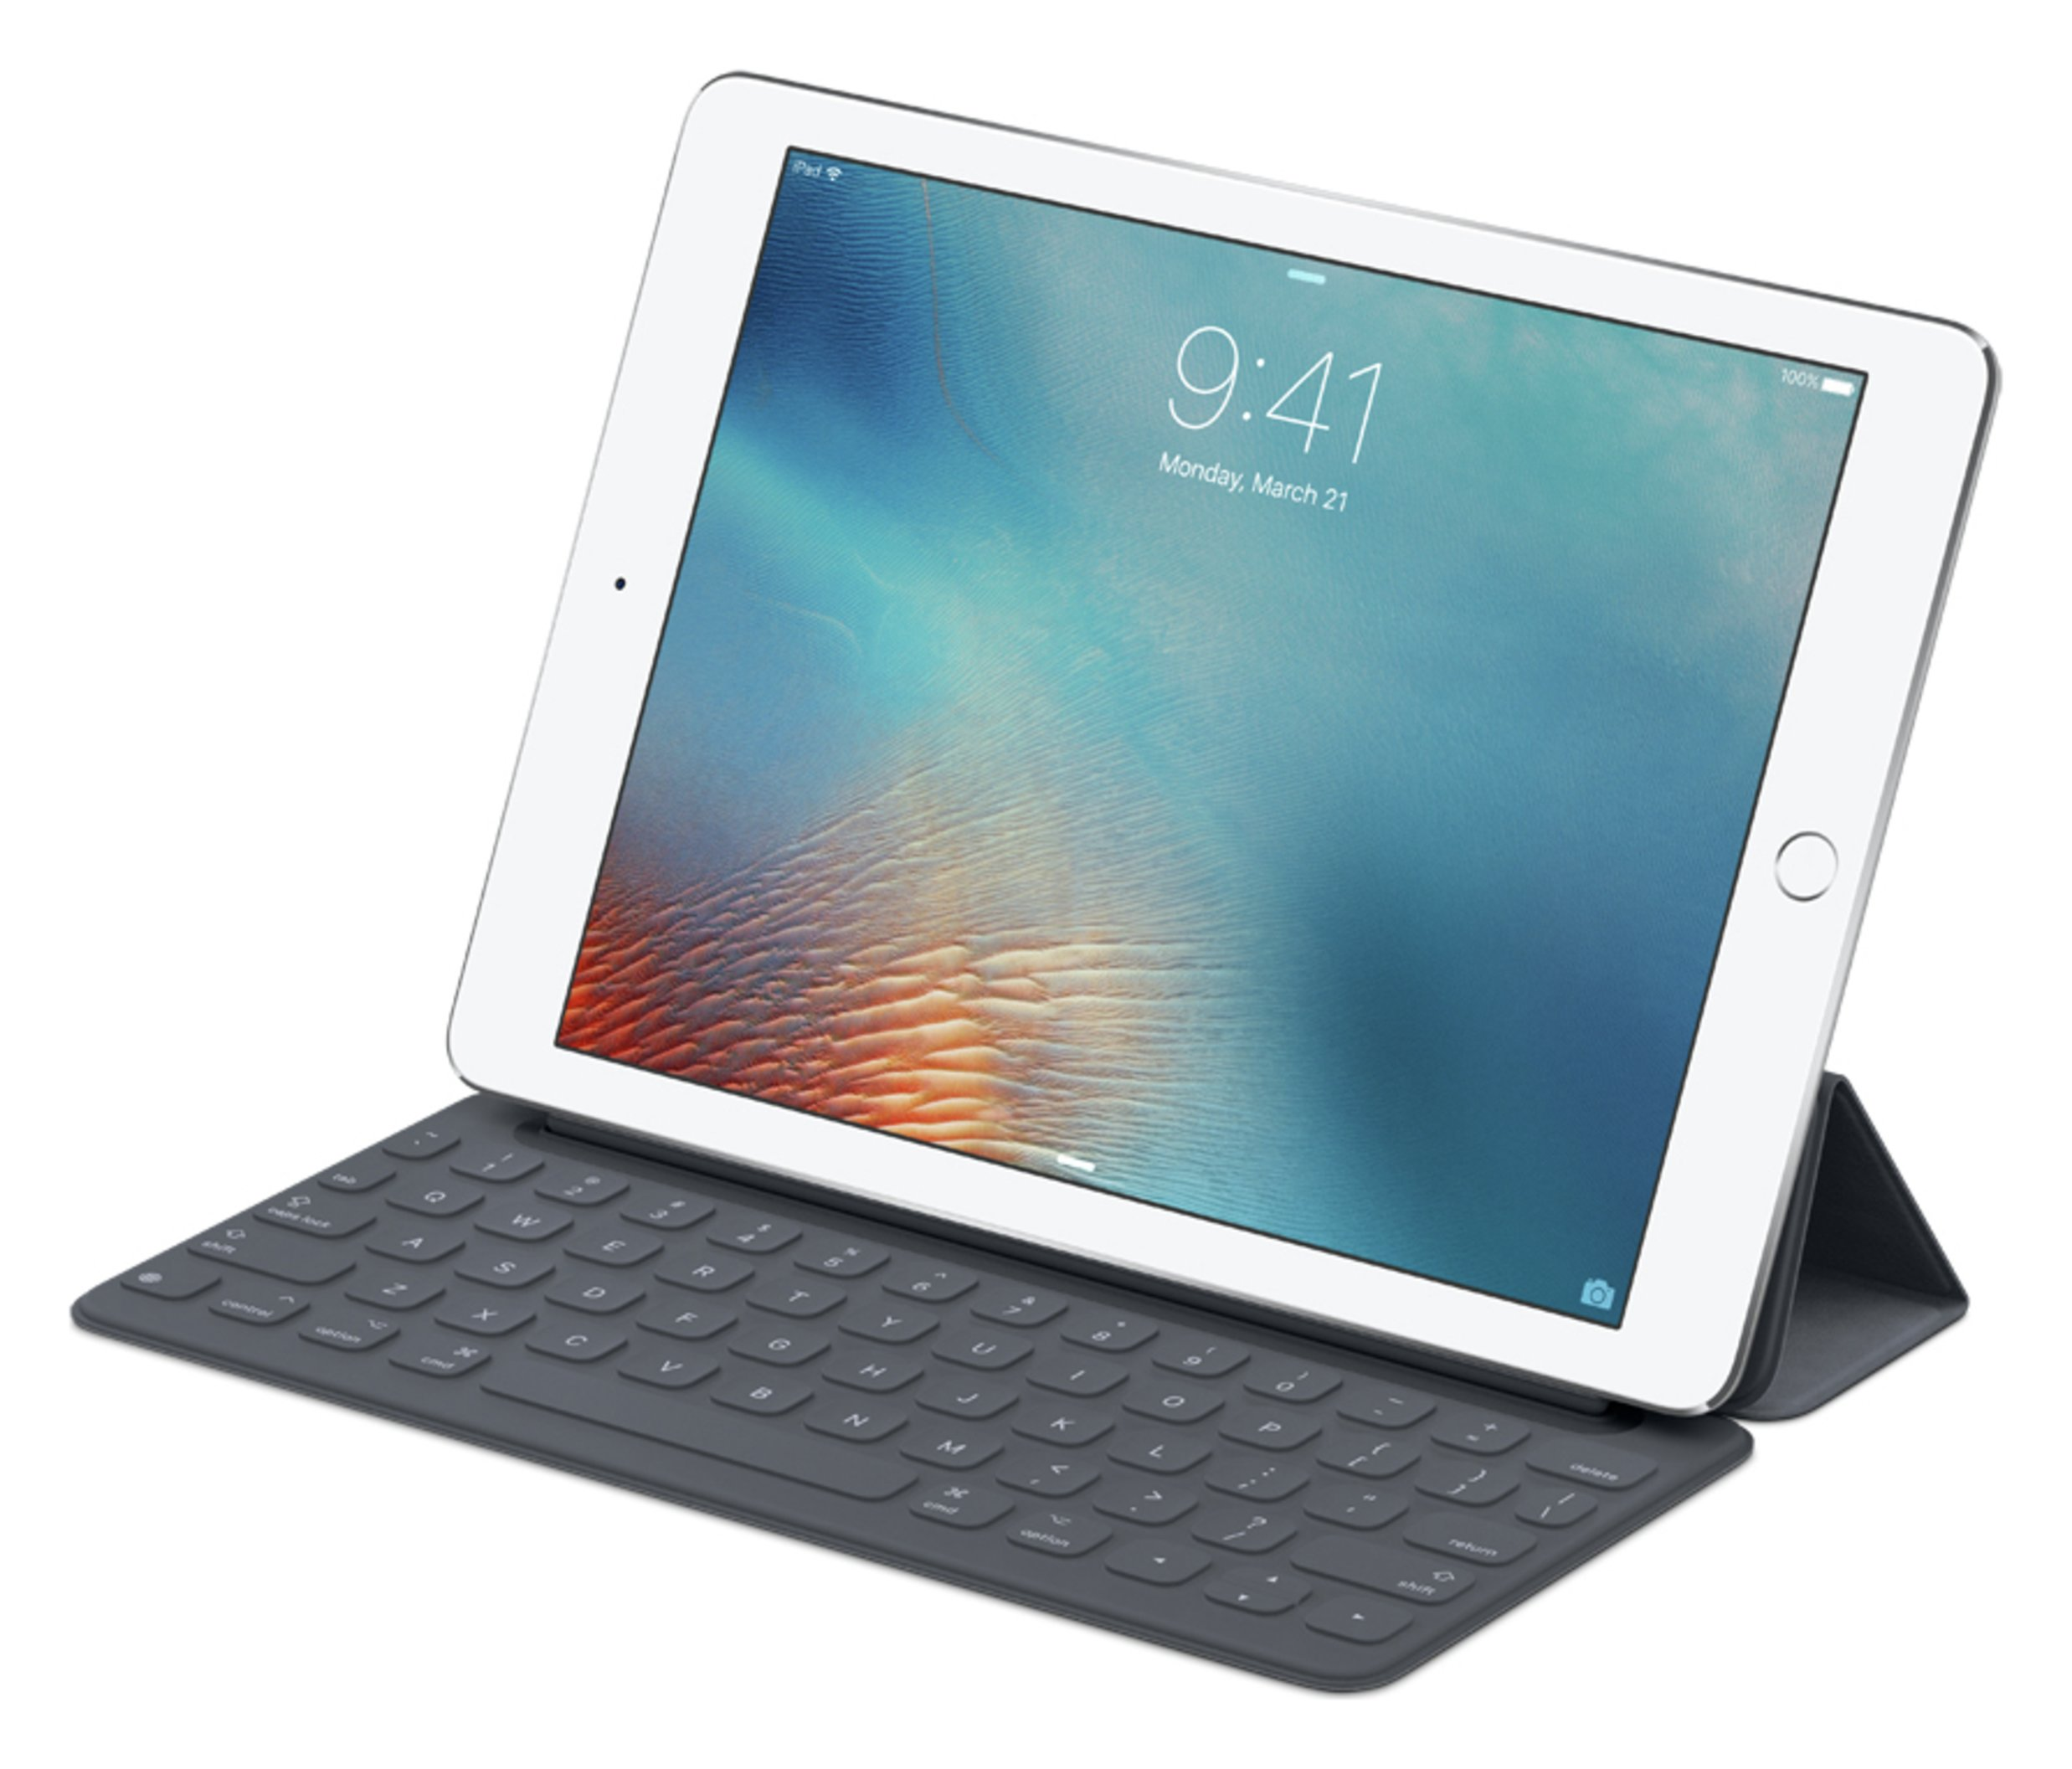 Apple iPad Pro 10.5 Inch Smart Keyboard - Black cheapest retail price